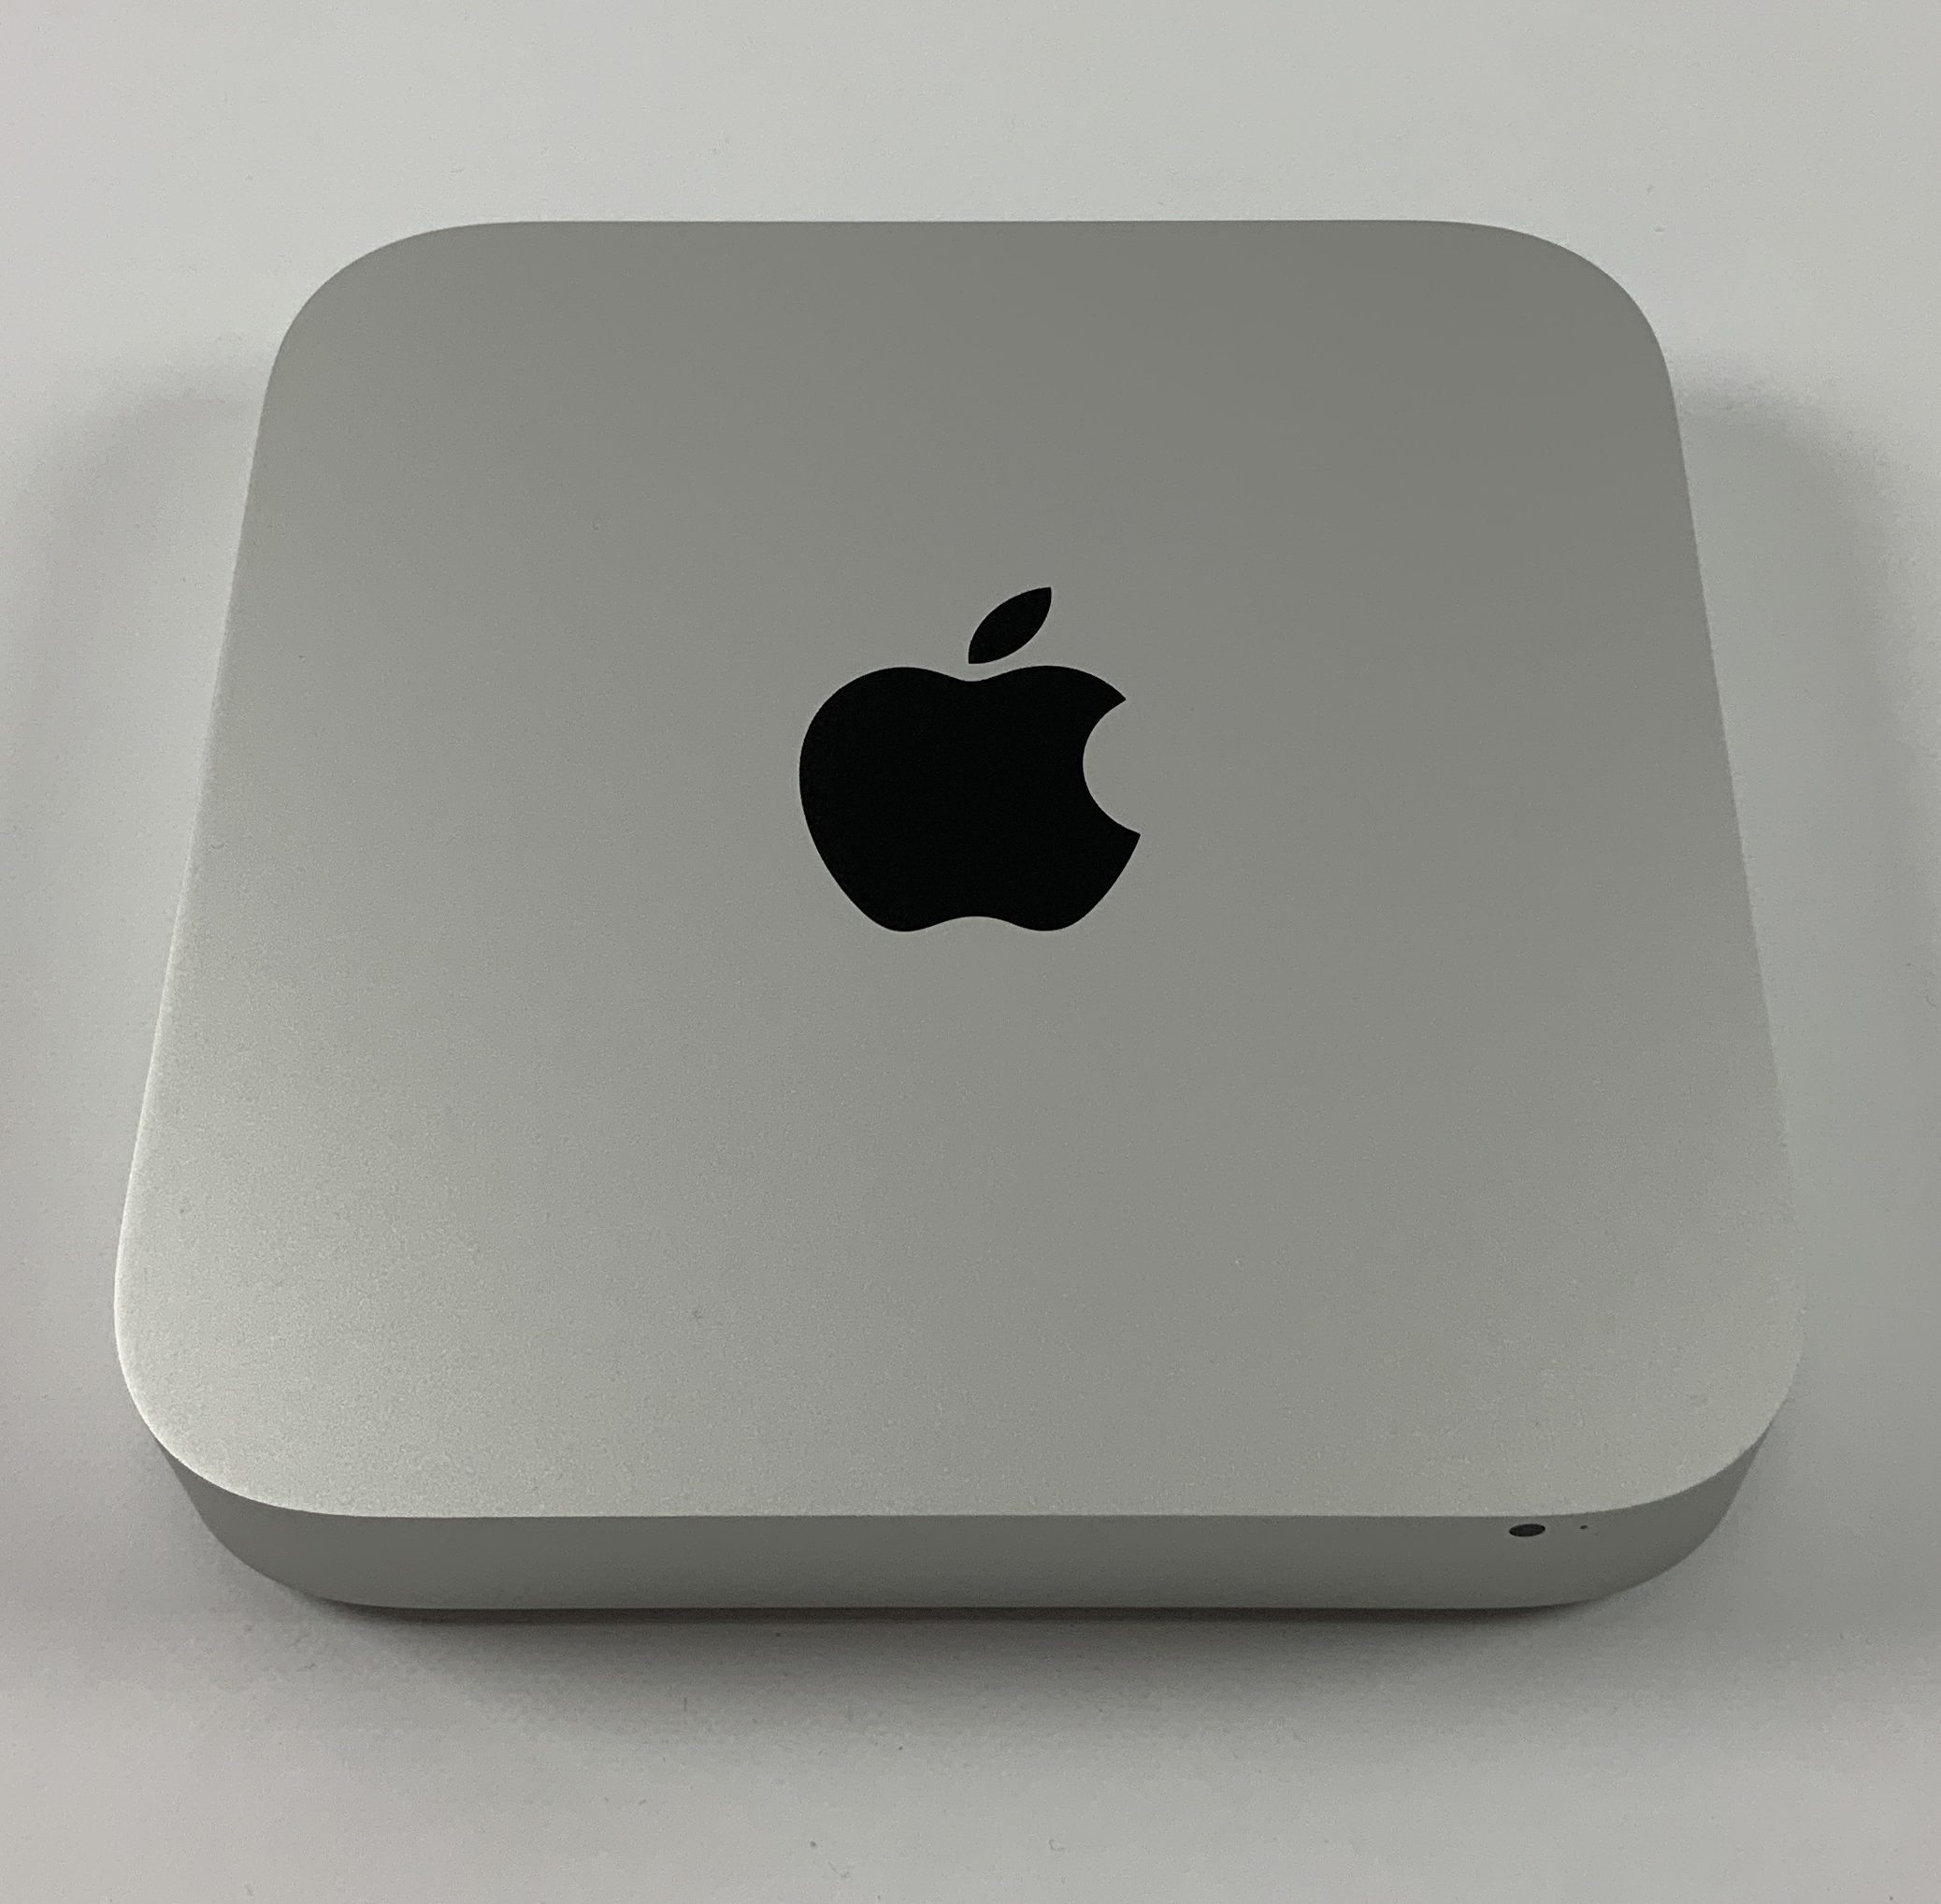 Mac Mini Late 2014 (Intel Core i5 2.6 GHz 8 GB RAM 1 TB Fusion Drive), Intel Core i5 2.6 GHz, 8 GB RAM, 1 TB Fusion Drive, image 1